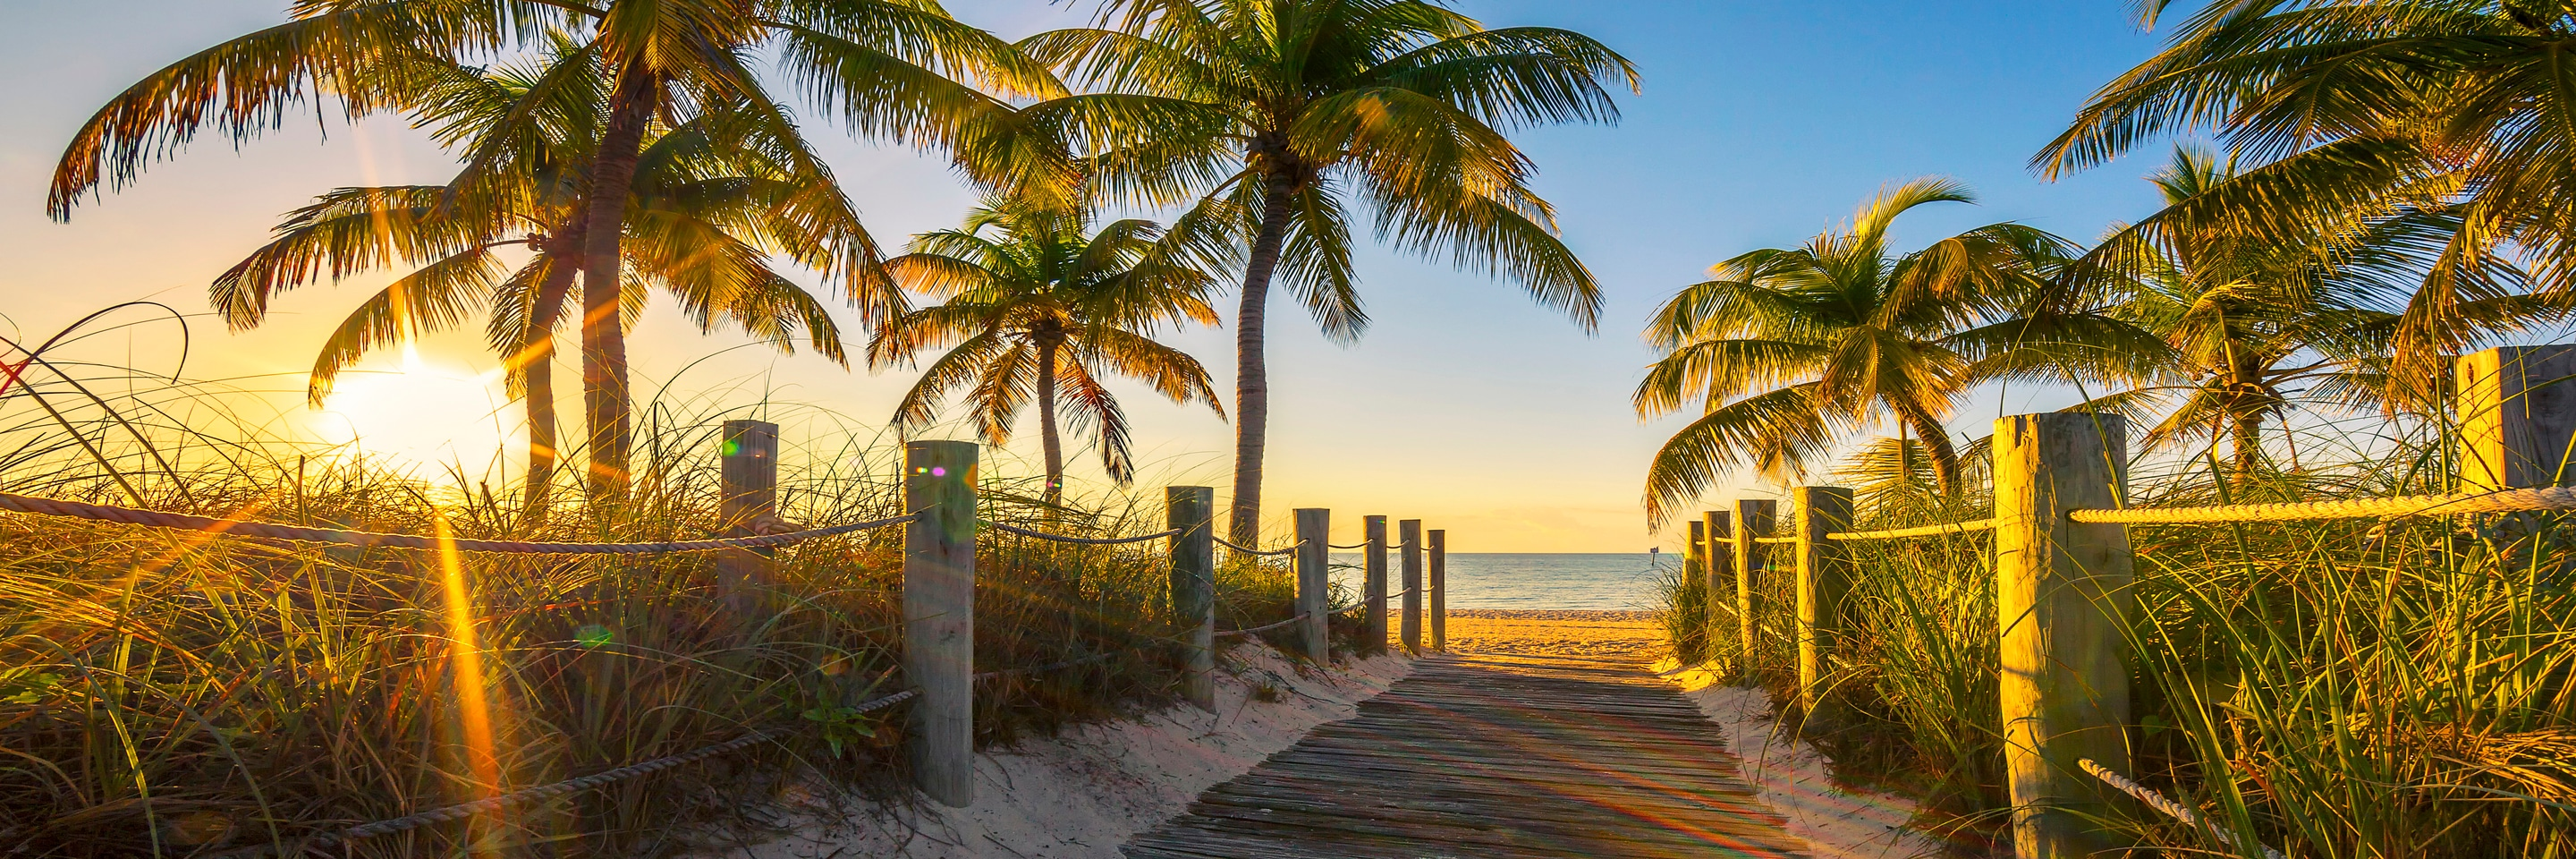 A wooden walkway down to a sandy beach at Key West, Florida at sunrise.